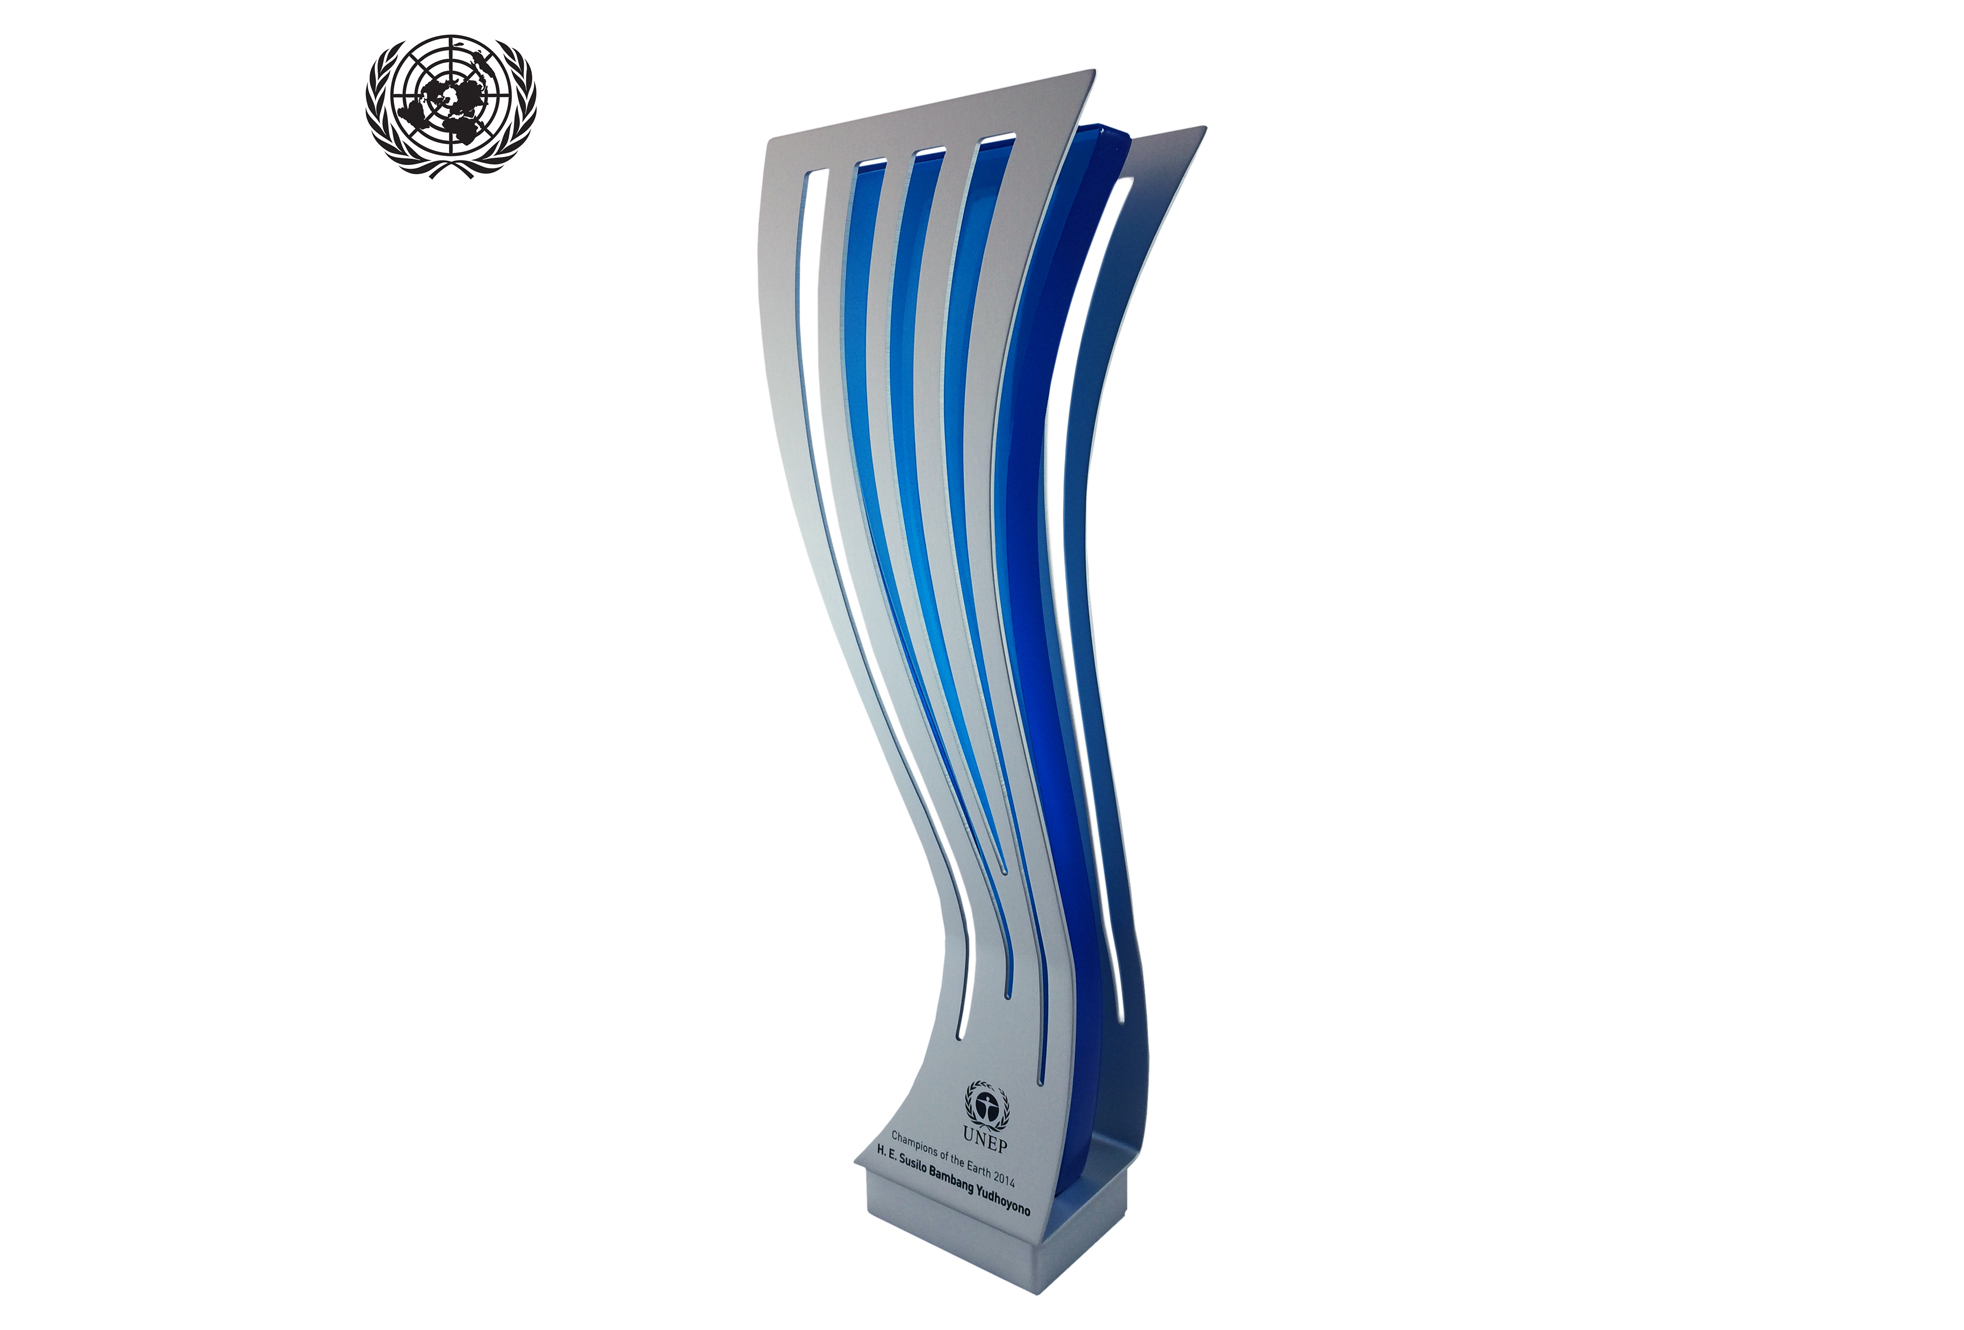 united nations custom glass award formal recognition foe special people.jpg